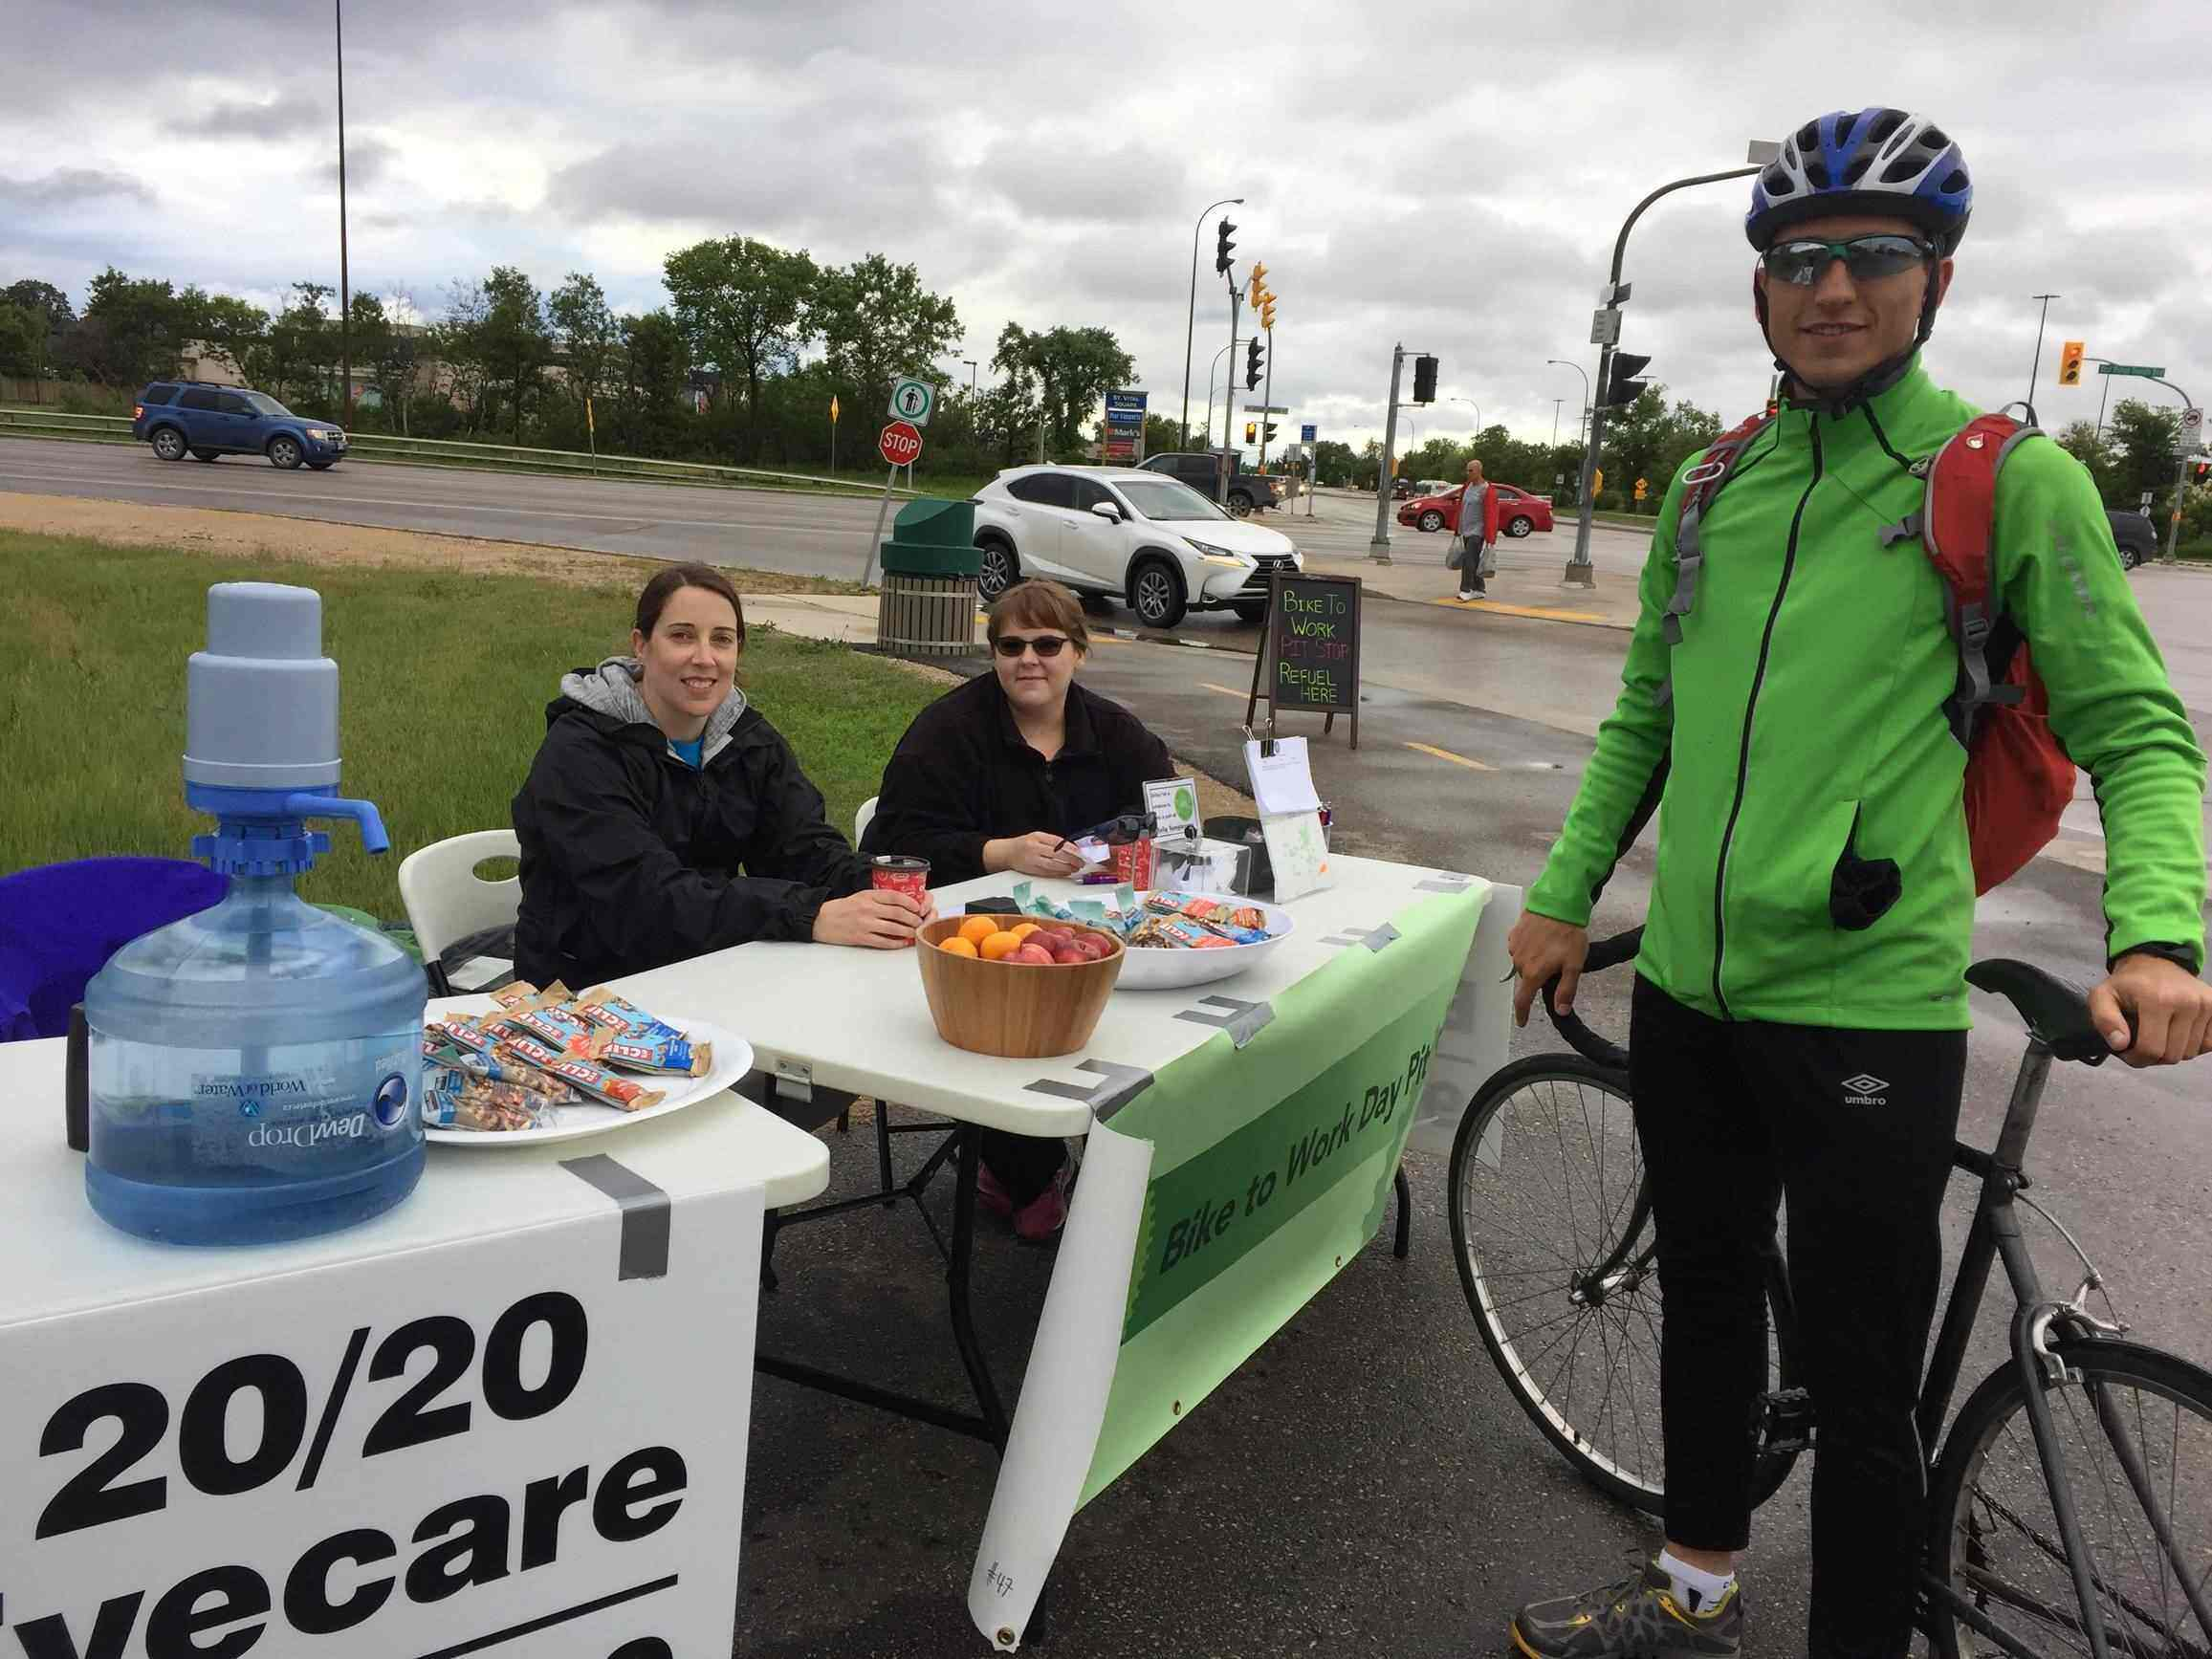 20/20 Staff posing with cyclist at pit stop table